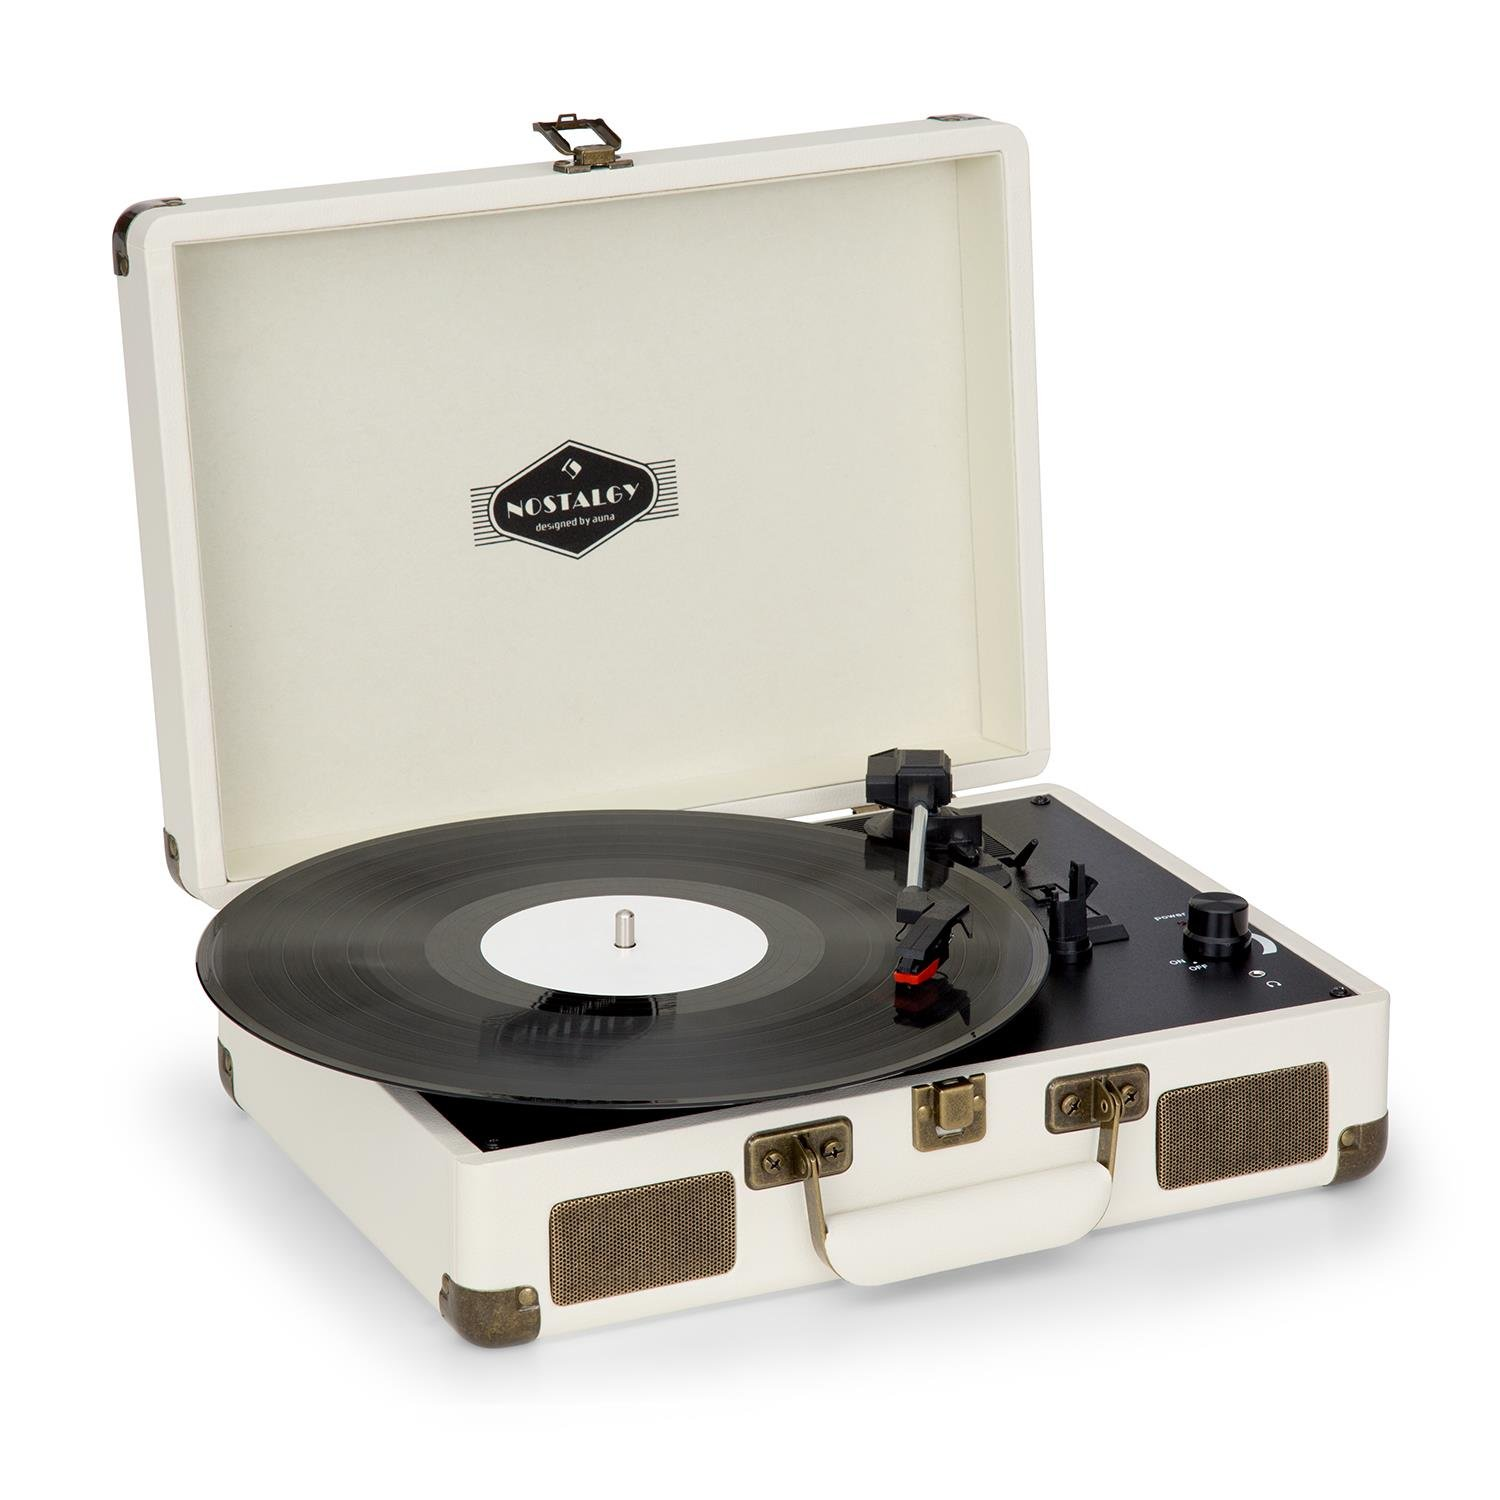 auna Peggy Sue • Turntable for Vinyl Records • Record Player with Speakers • Retro Design • USB-Port • Digitization • Plug & Play • Portable Suitcase • Creme